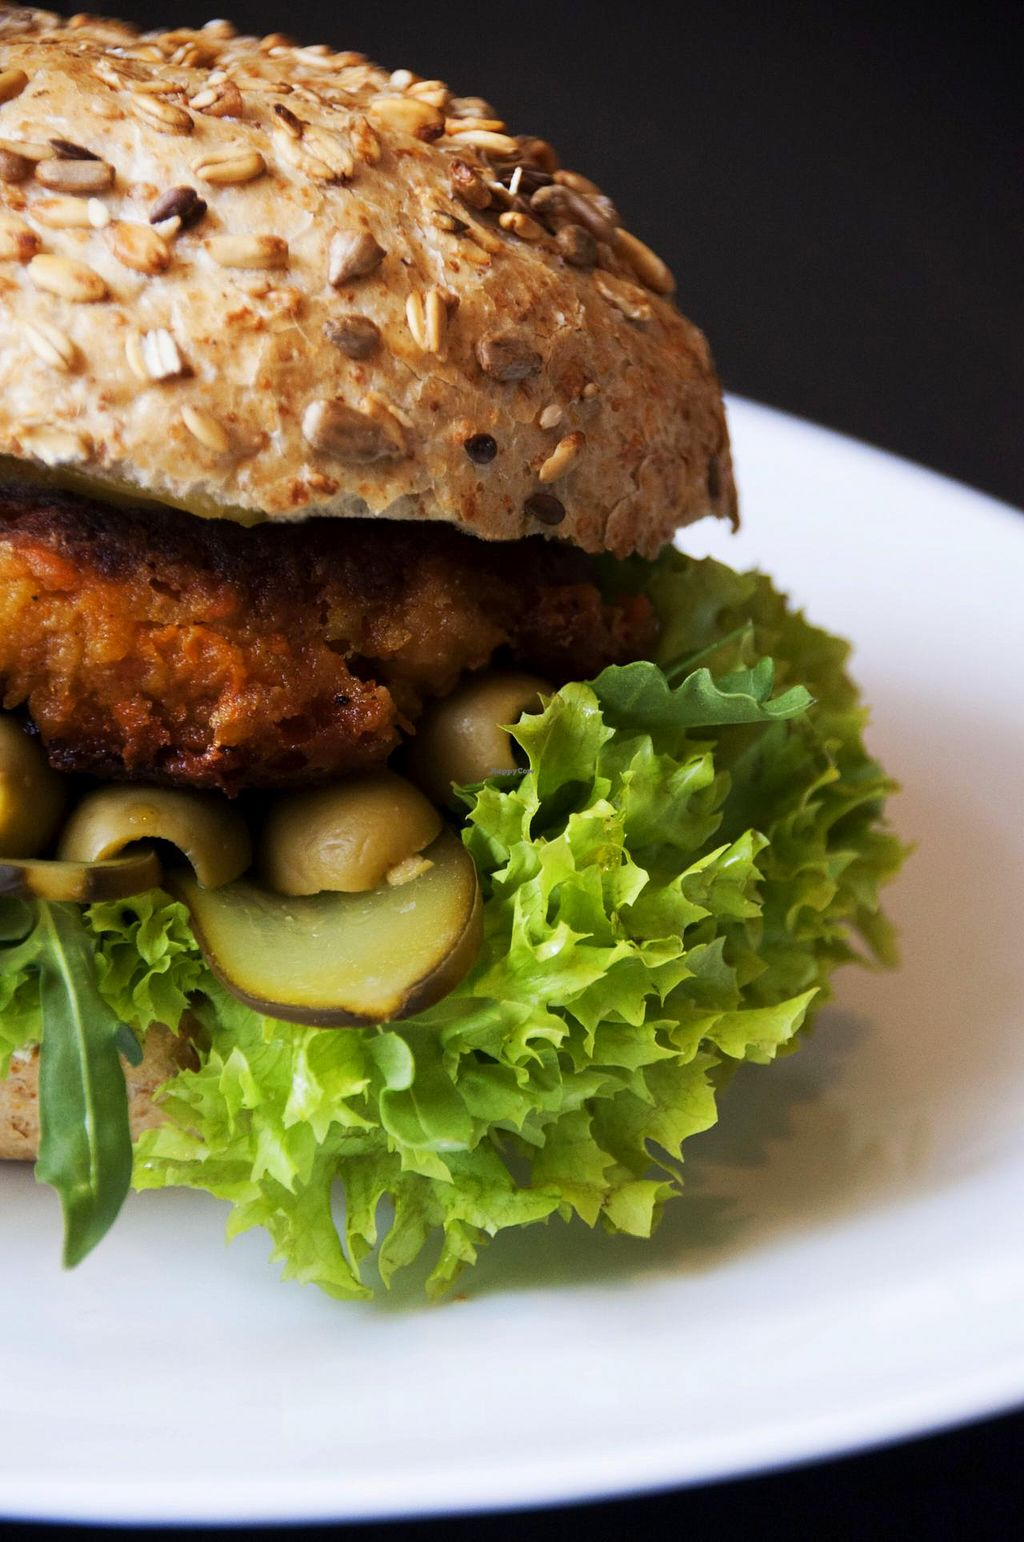 """Photo of CLOSED: vb veganburgers  by <a href=""""/members/profile/veronicafreespirit"""">veronicafreespirit</a> <br/>Foodie <br/> June 4, 2015  - <a href='/contact/abuse/image/51207/104715'>Report</a>"""